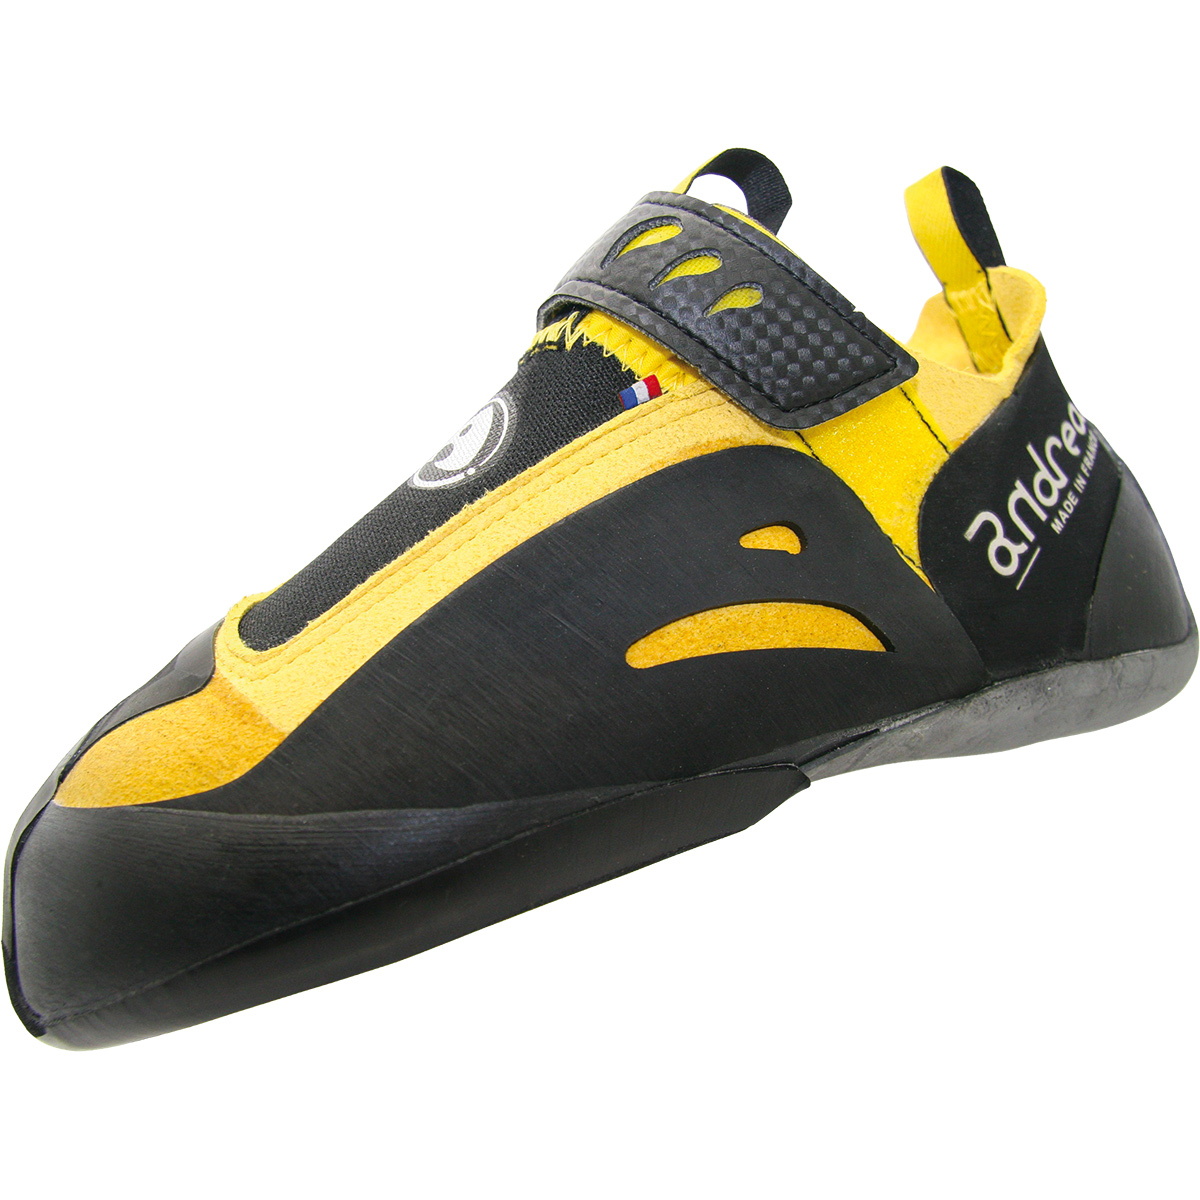 THE SPIRIT OF ANDREA BOLDRINI. Tradition and innovation. Designing and  manufacturing slipper rock climbing shoes ... 82eeae72f